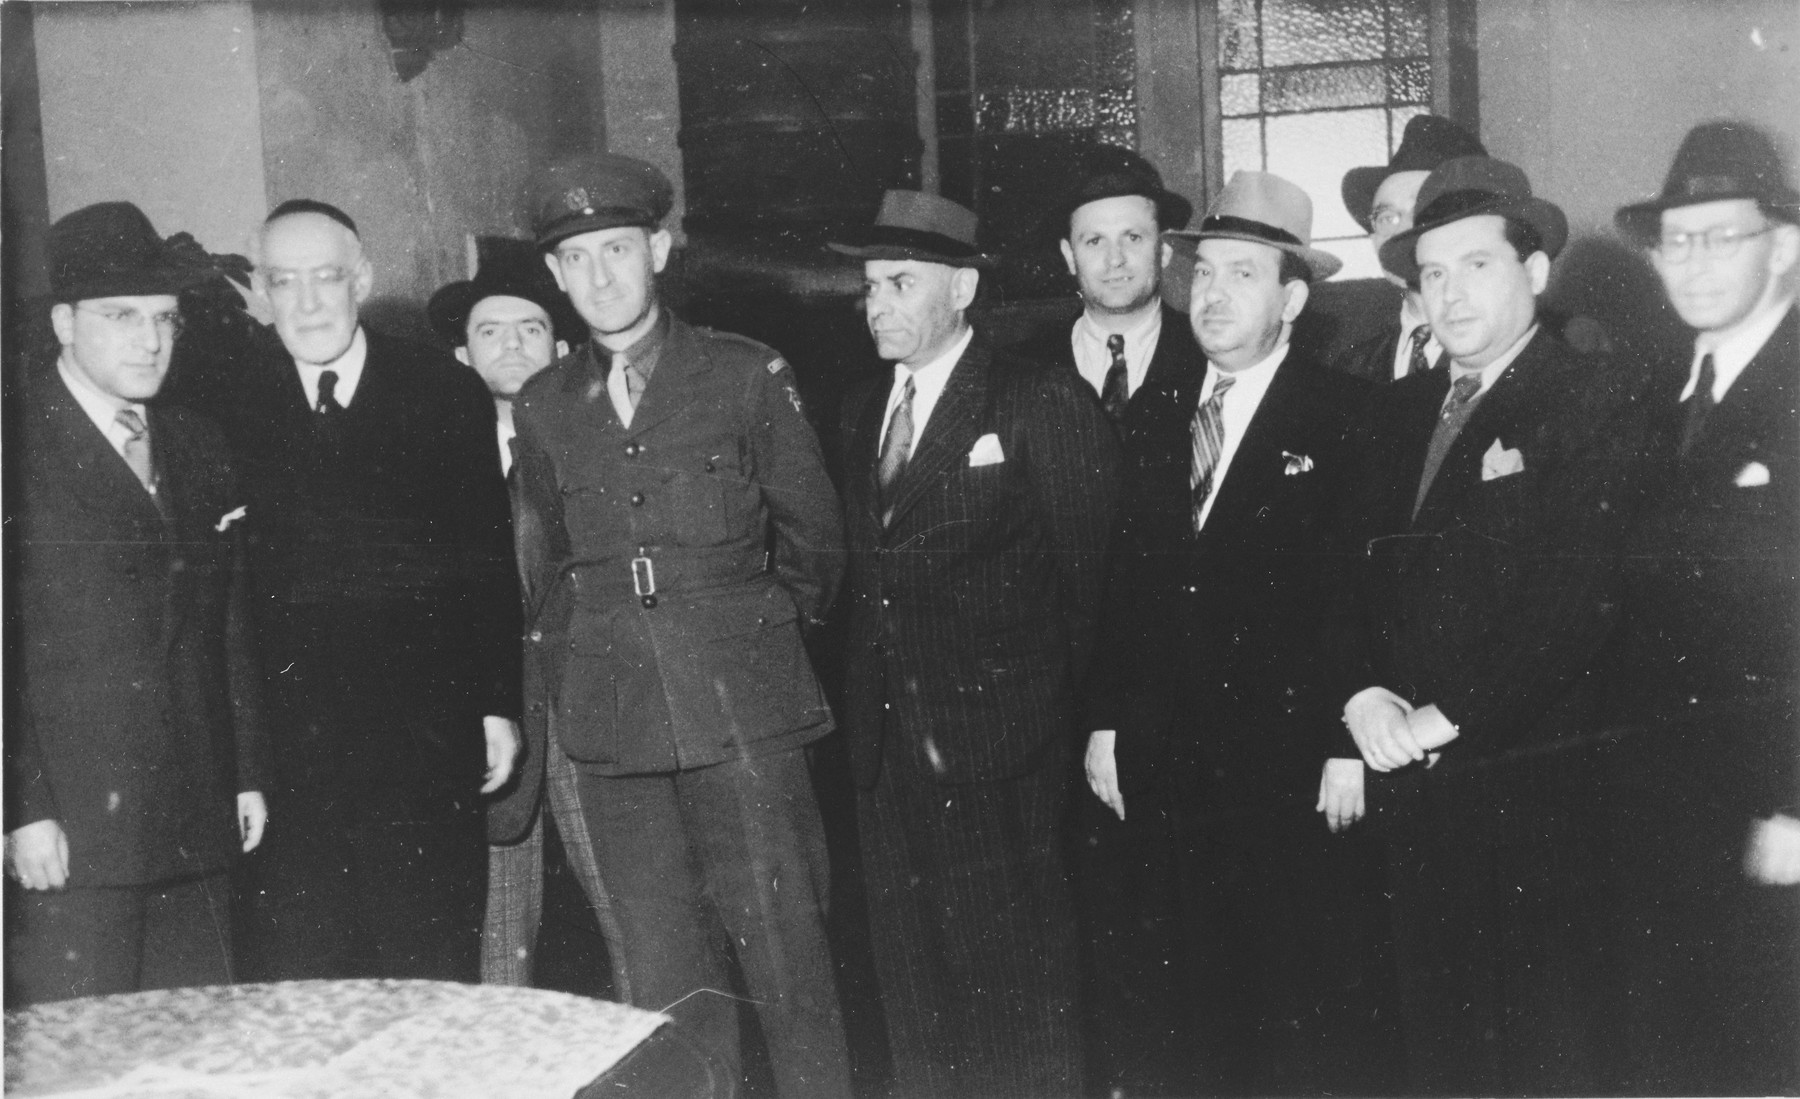 Rabbi Leo Baeck poses with a group of Jewish leaders during his three week visit to Germany.  Norbert Wollheim stands at the far left next to Baeck.  Baeck was greeted at the airport by Norbert Wollheim, Chairman of the Central Committee of Jews in the British Zone.  Baeck's trip included participation in an evangelical congress in Darmstadt on October 12, as well as numerous appearances before local Jewish communities.